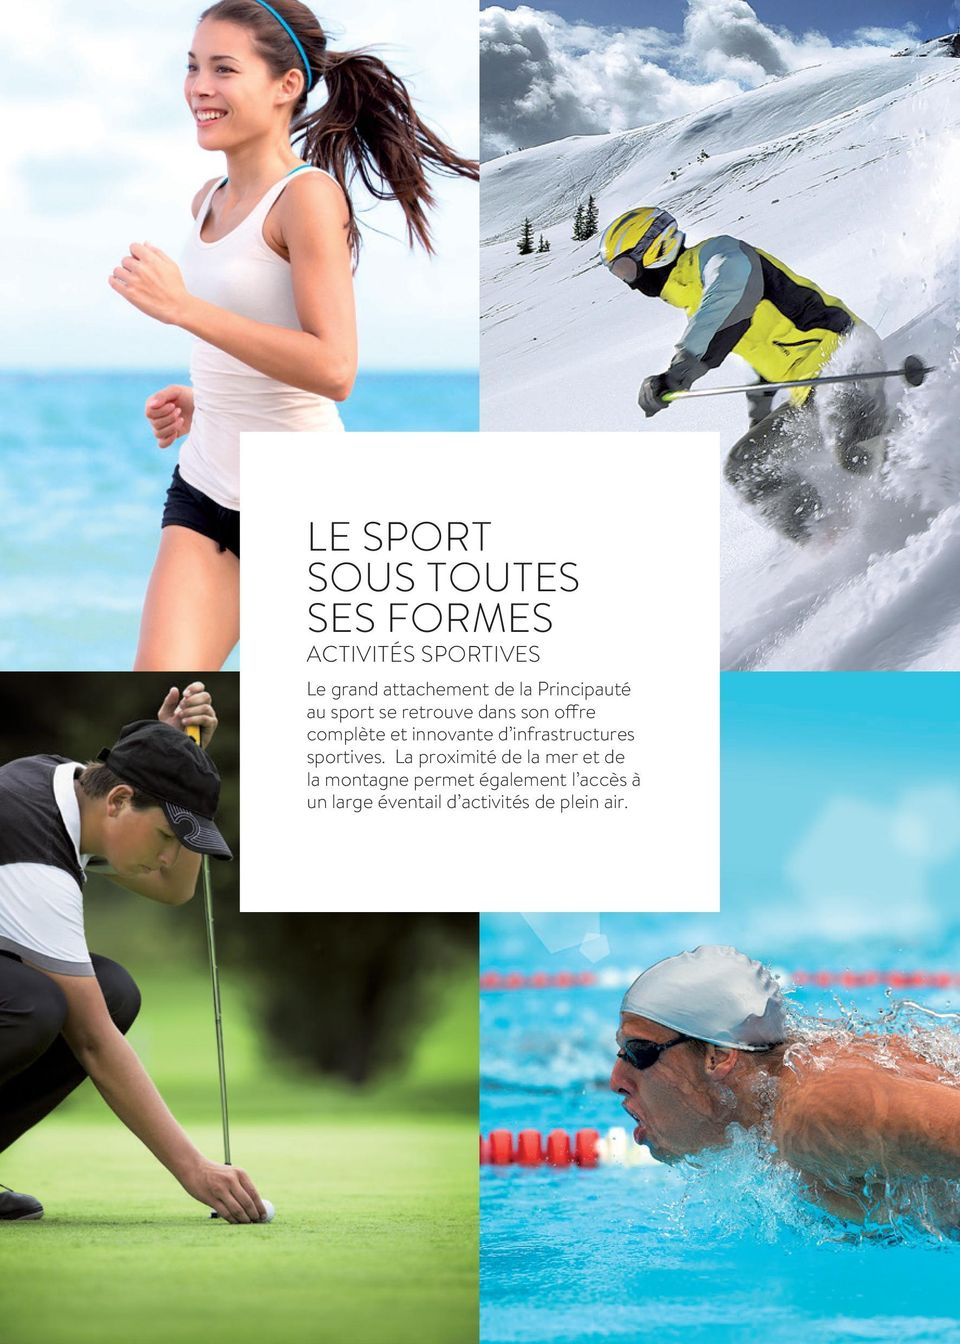 innovante d infrastructures sportives.